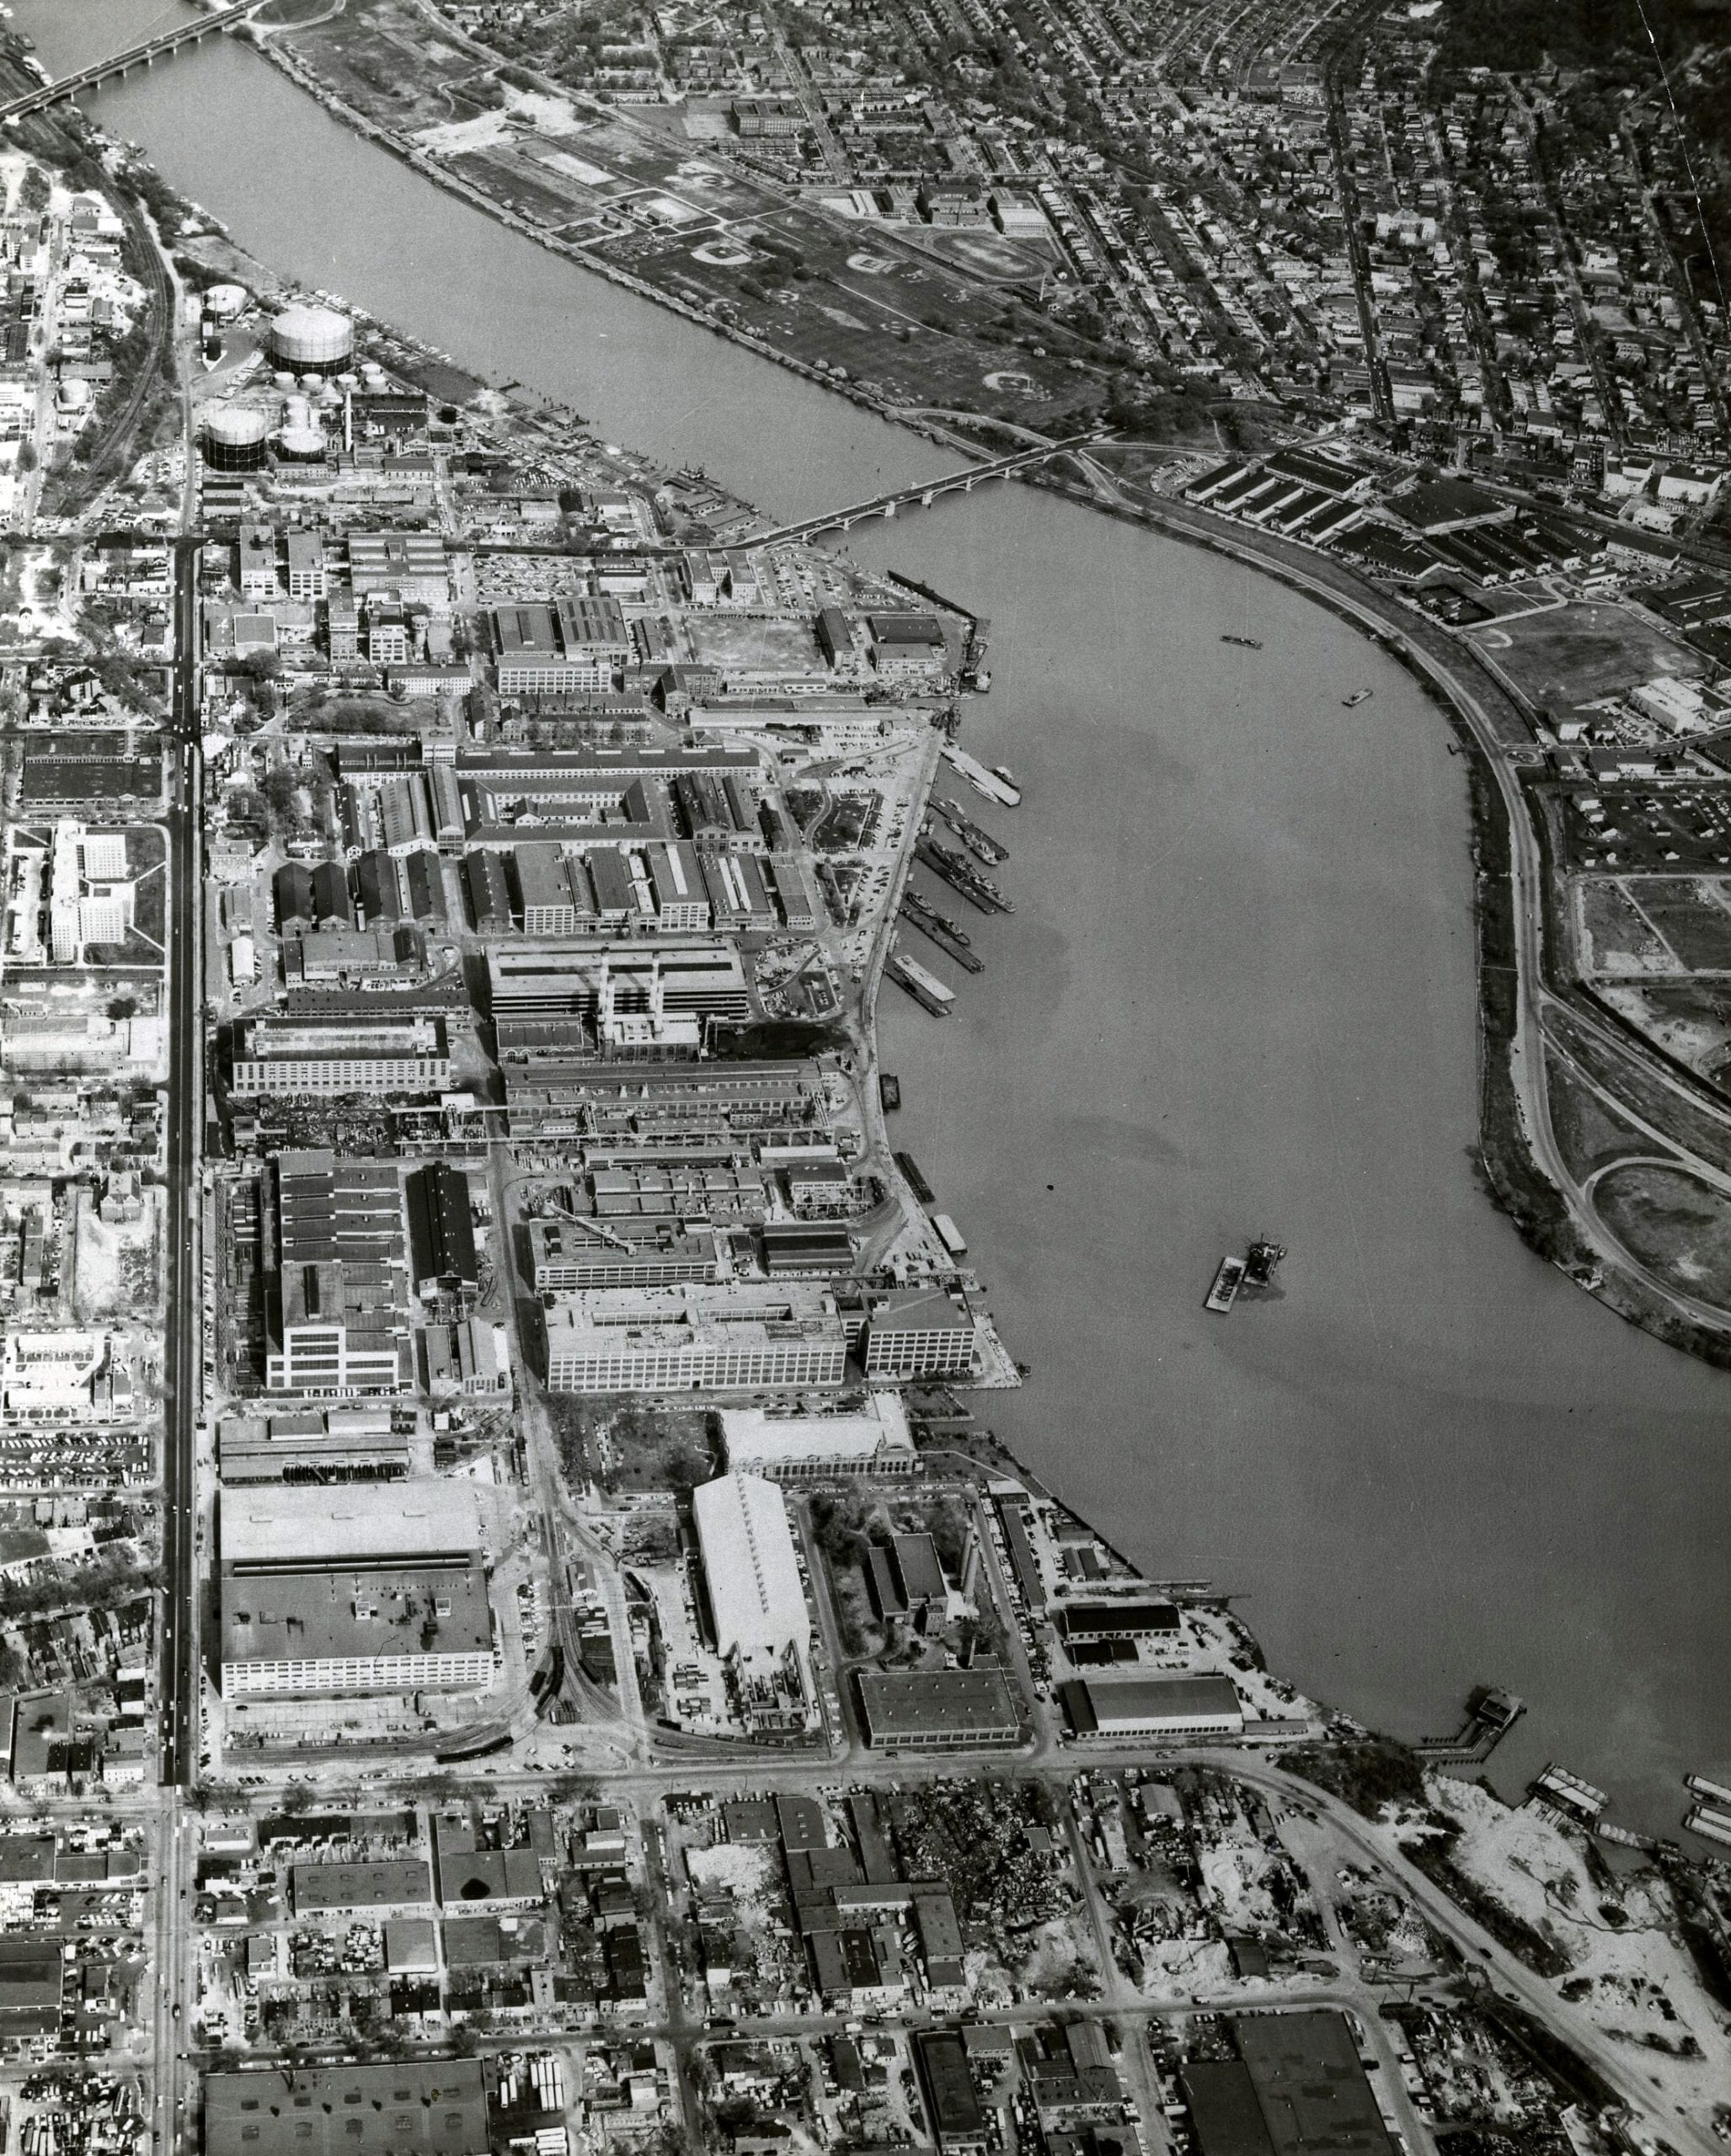 Aerial Views of the Navy Yard in the 1960s, 70s, and 80s